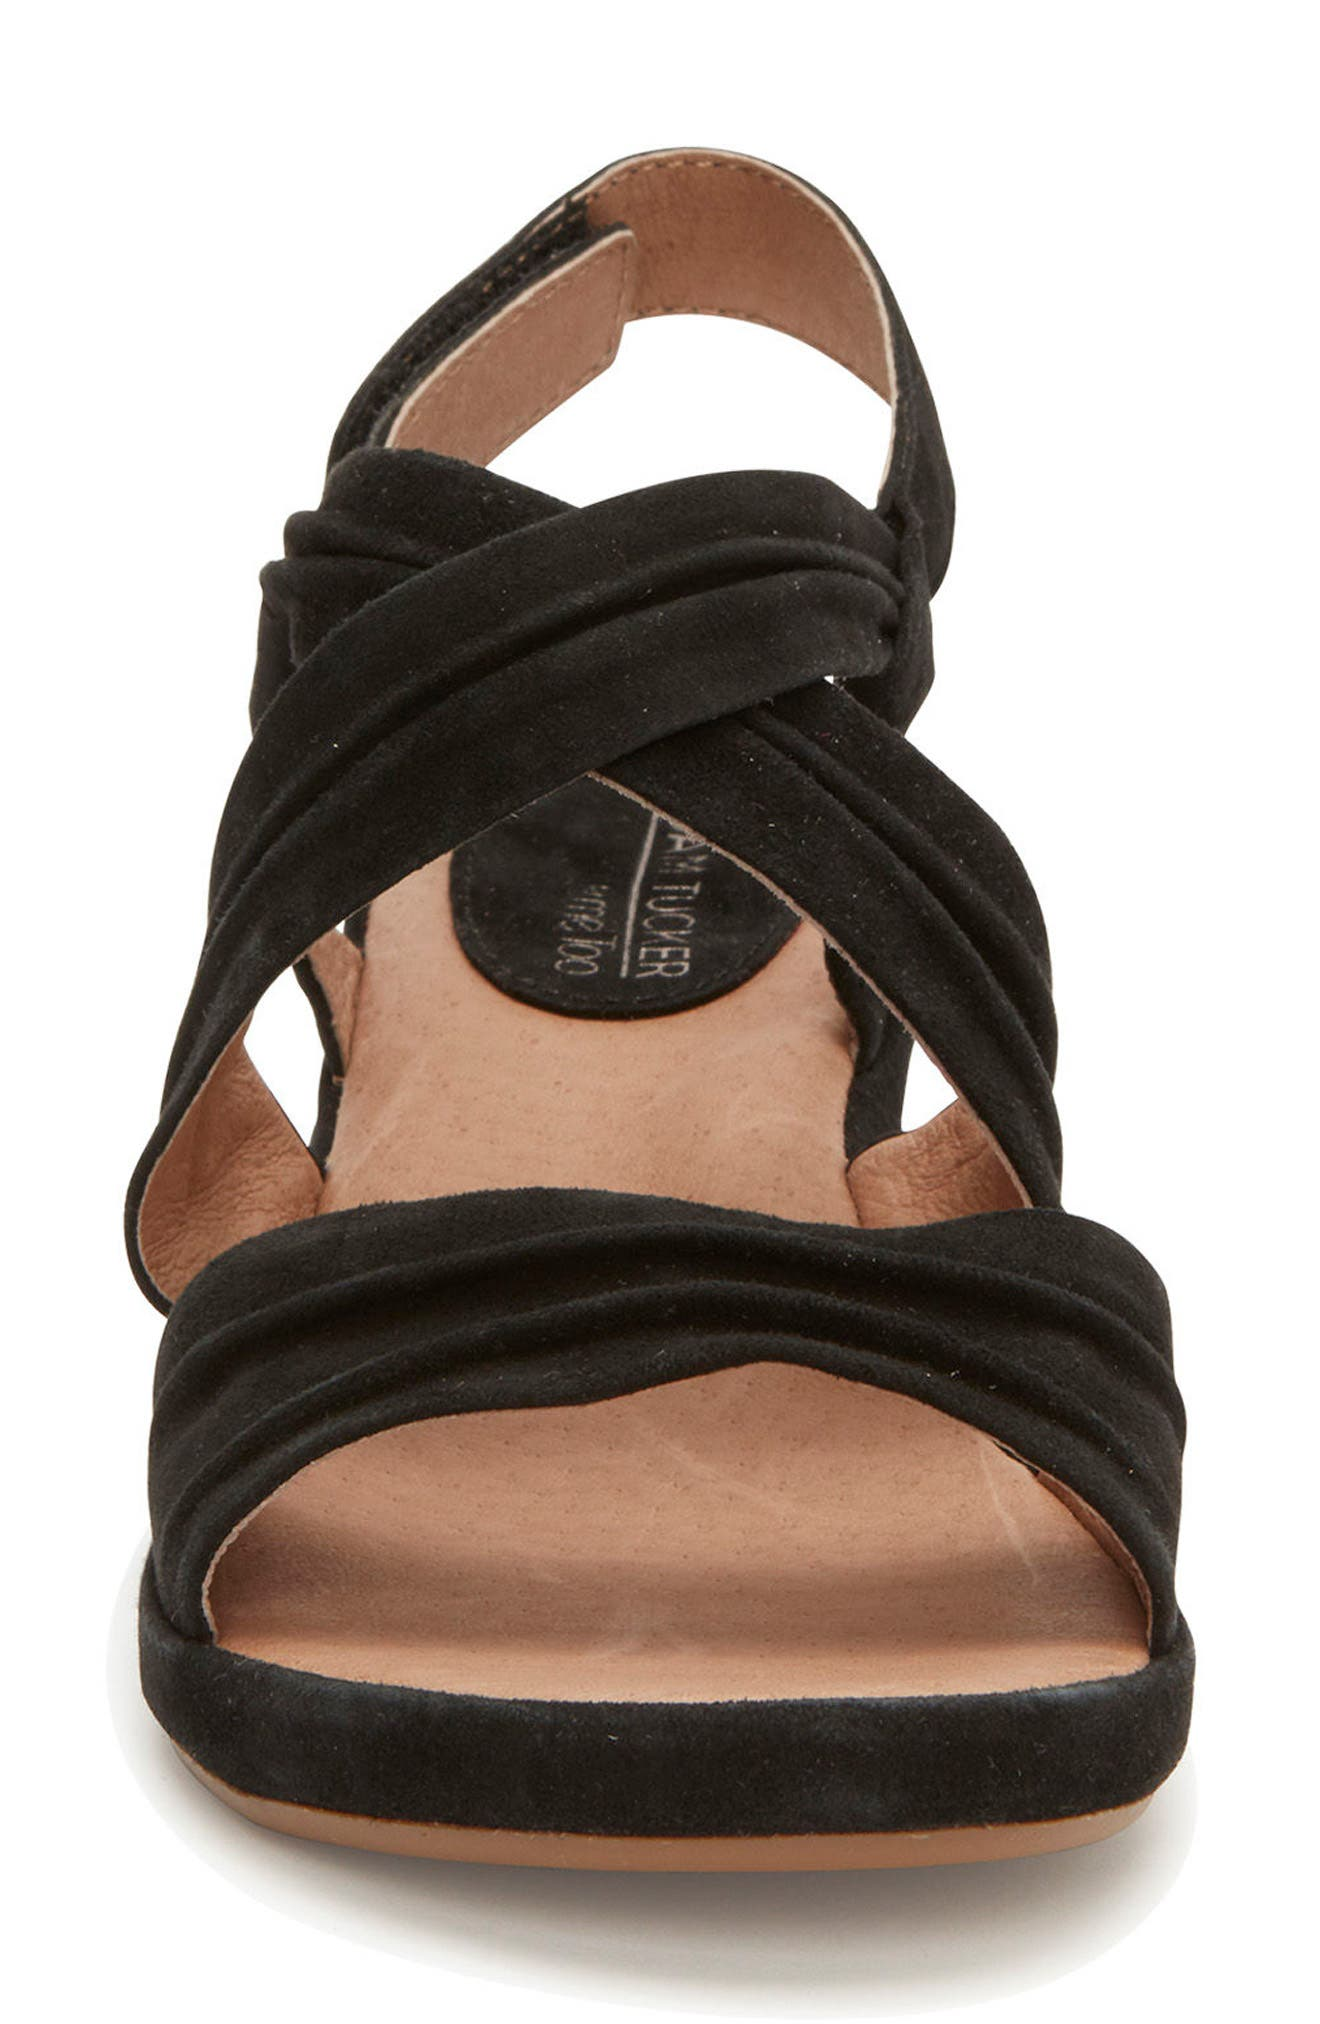 Adam Tucker Yvette Sandal,                             Alternate thumbnail 4, color,                             Black Suede